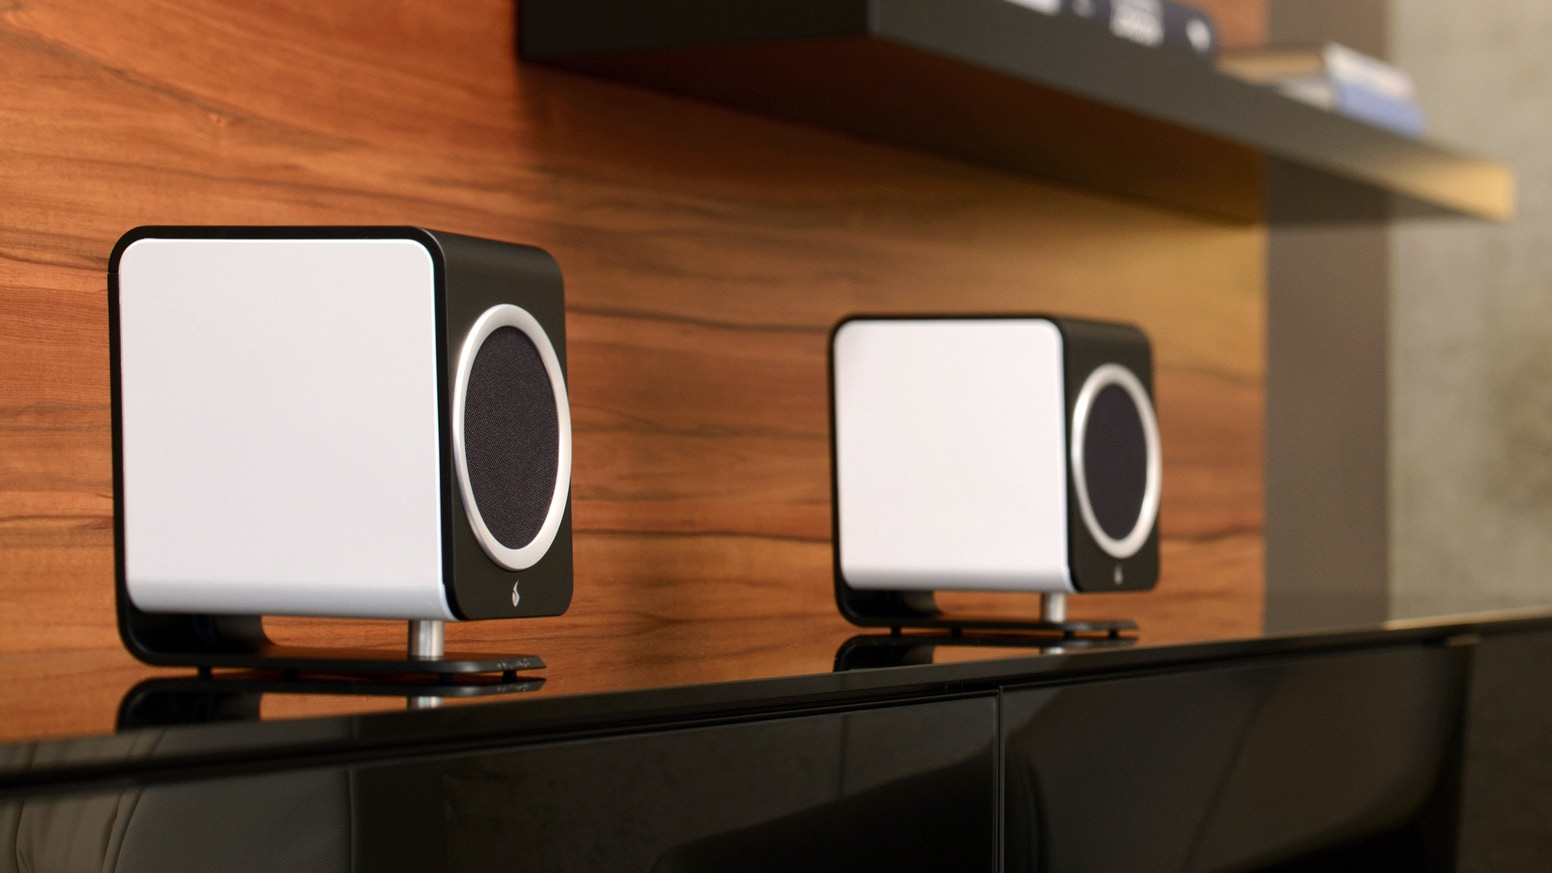 The ultimate in award-winning, truly high-end quality has come to the desktop, with beautiful design and plug-and-play simplicity. Designed and assembled by hand in Switzerland.